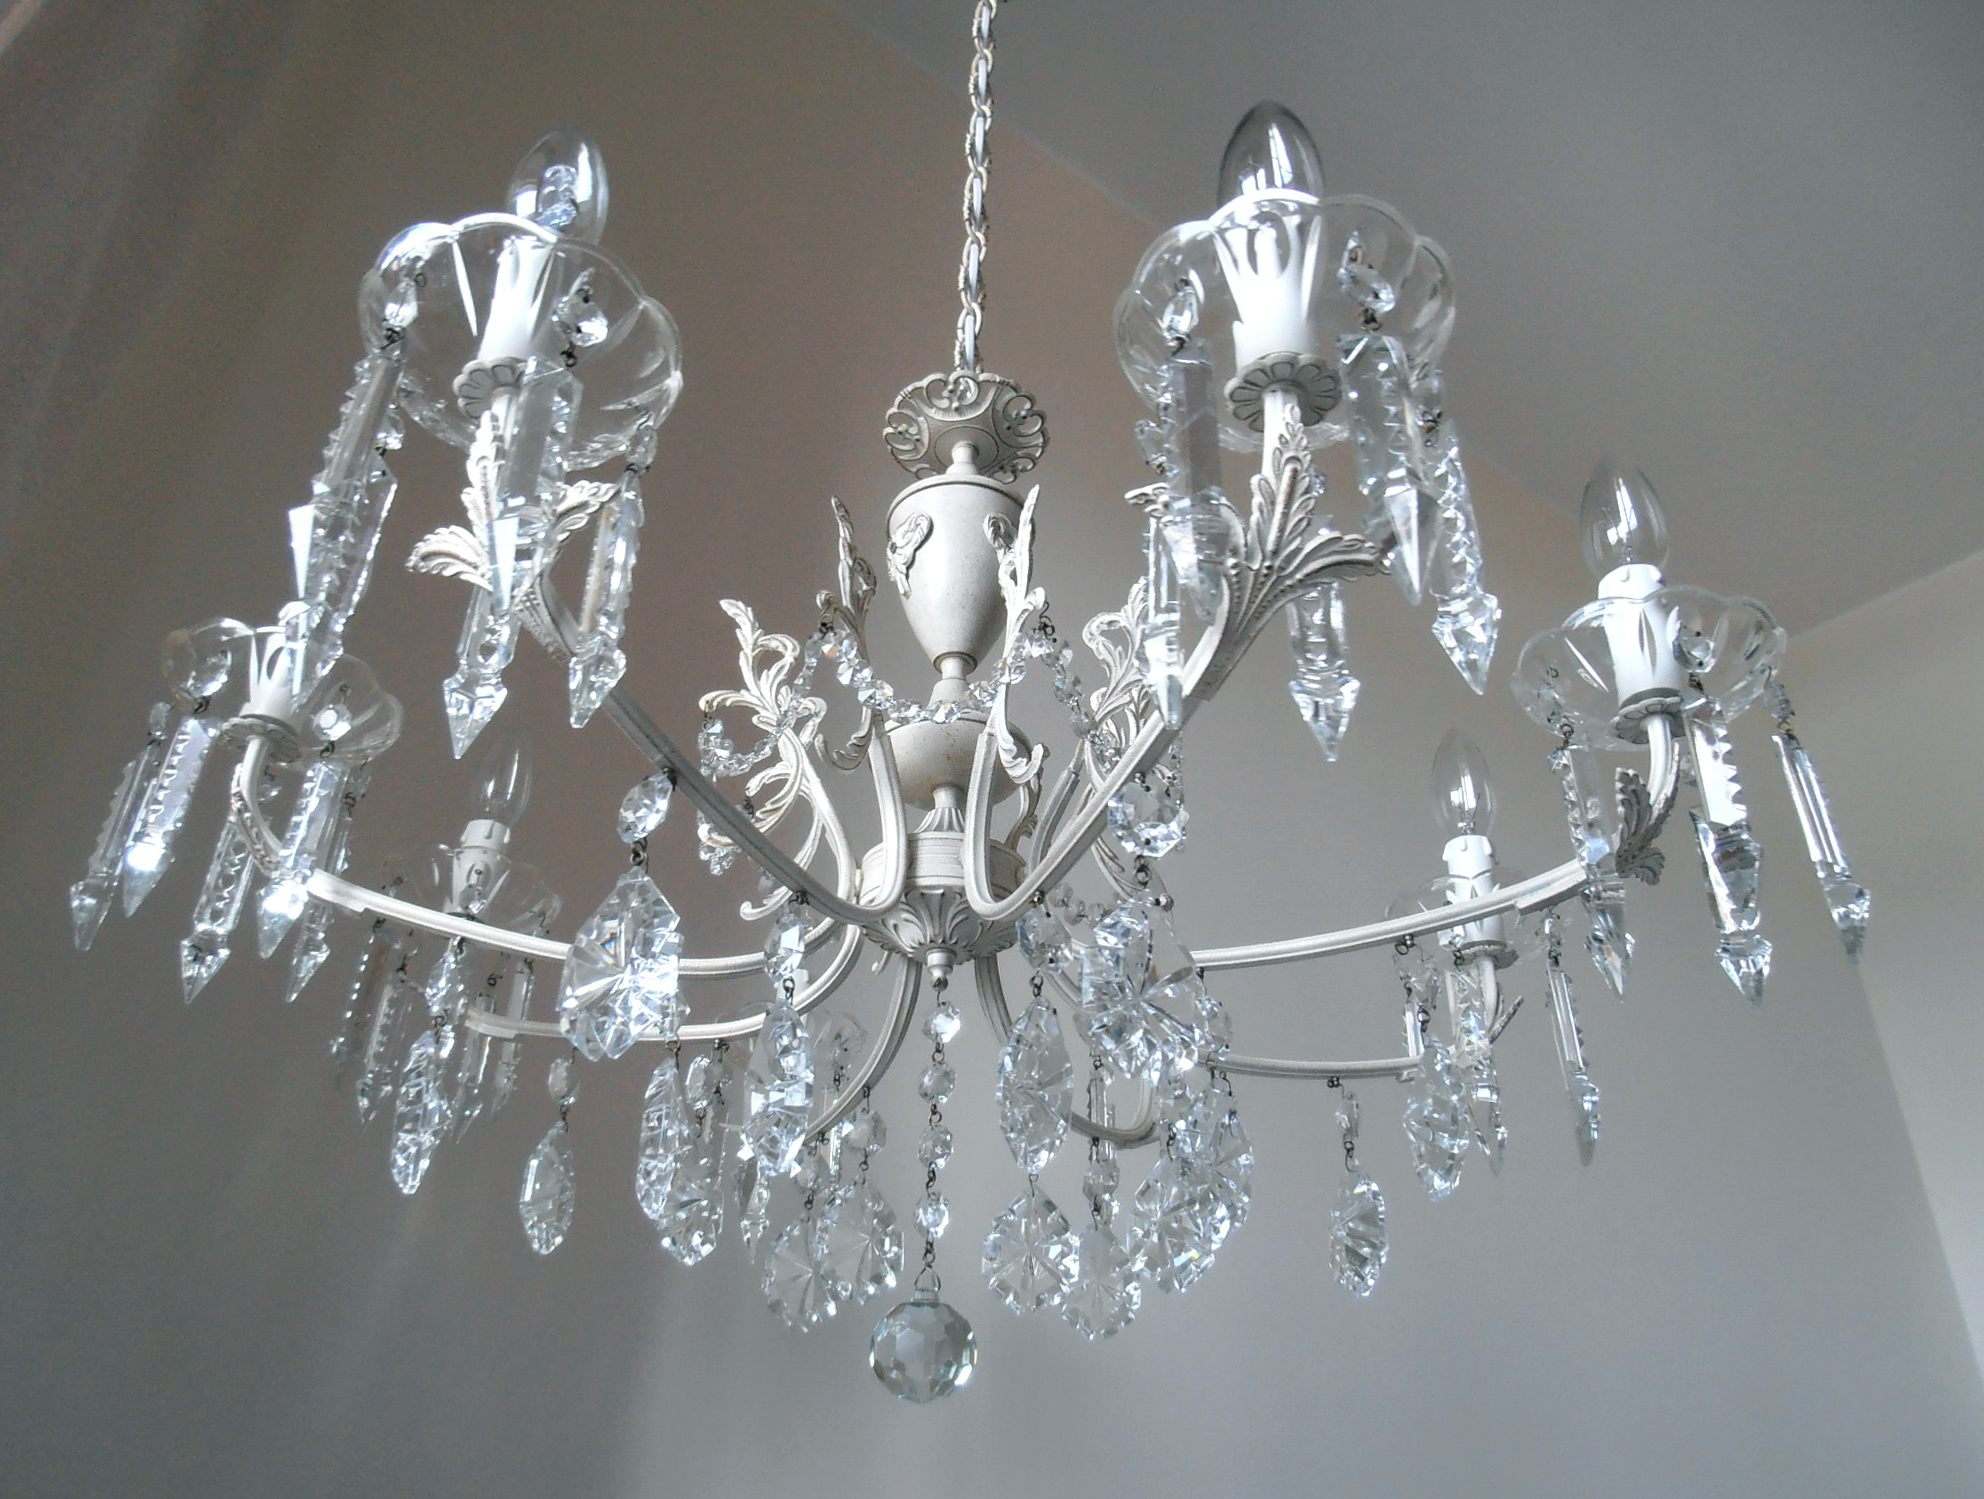 Shabby Chic Chandeliers Crystal